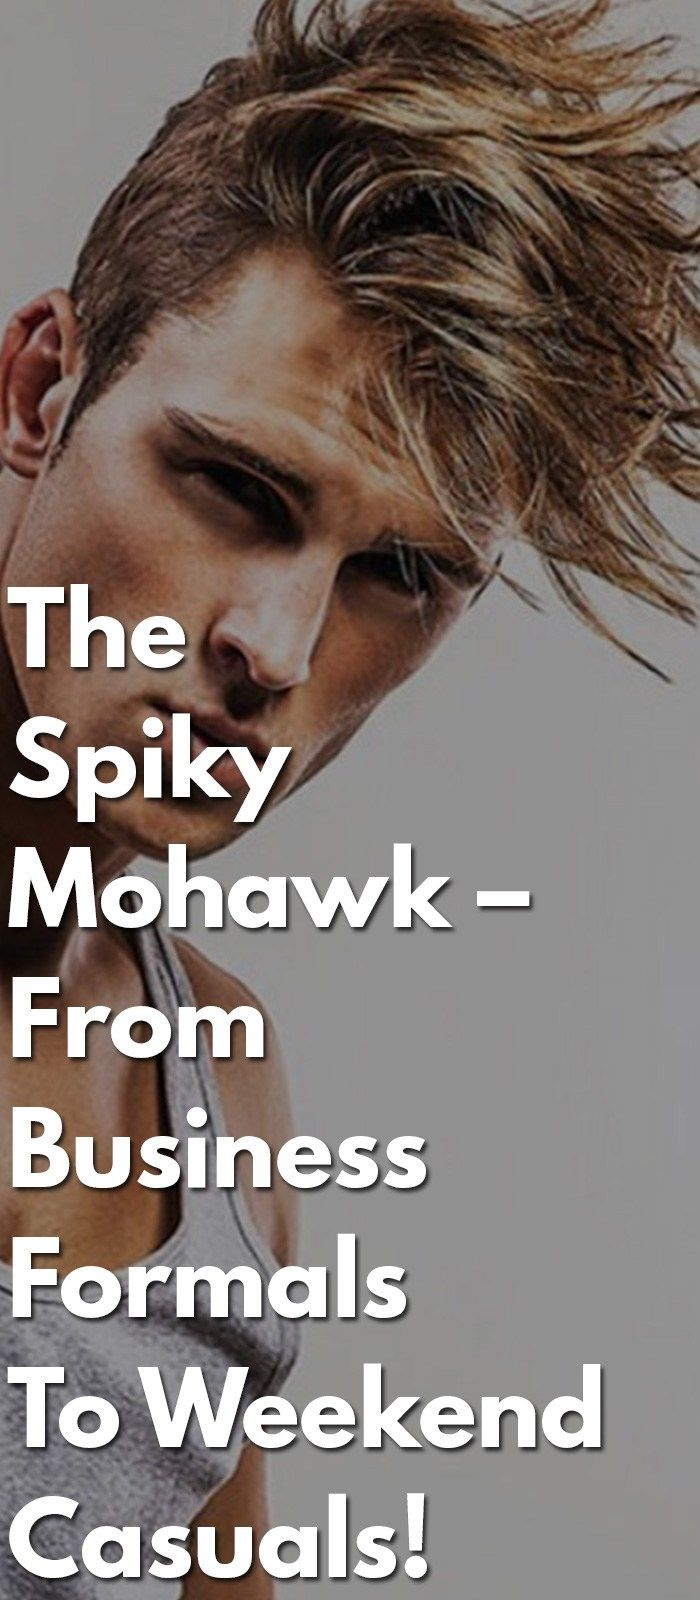 Spikey mohawk mens hairstyle pinterest business formal and mohawks